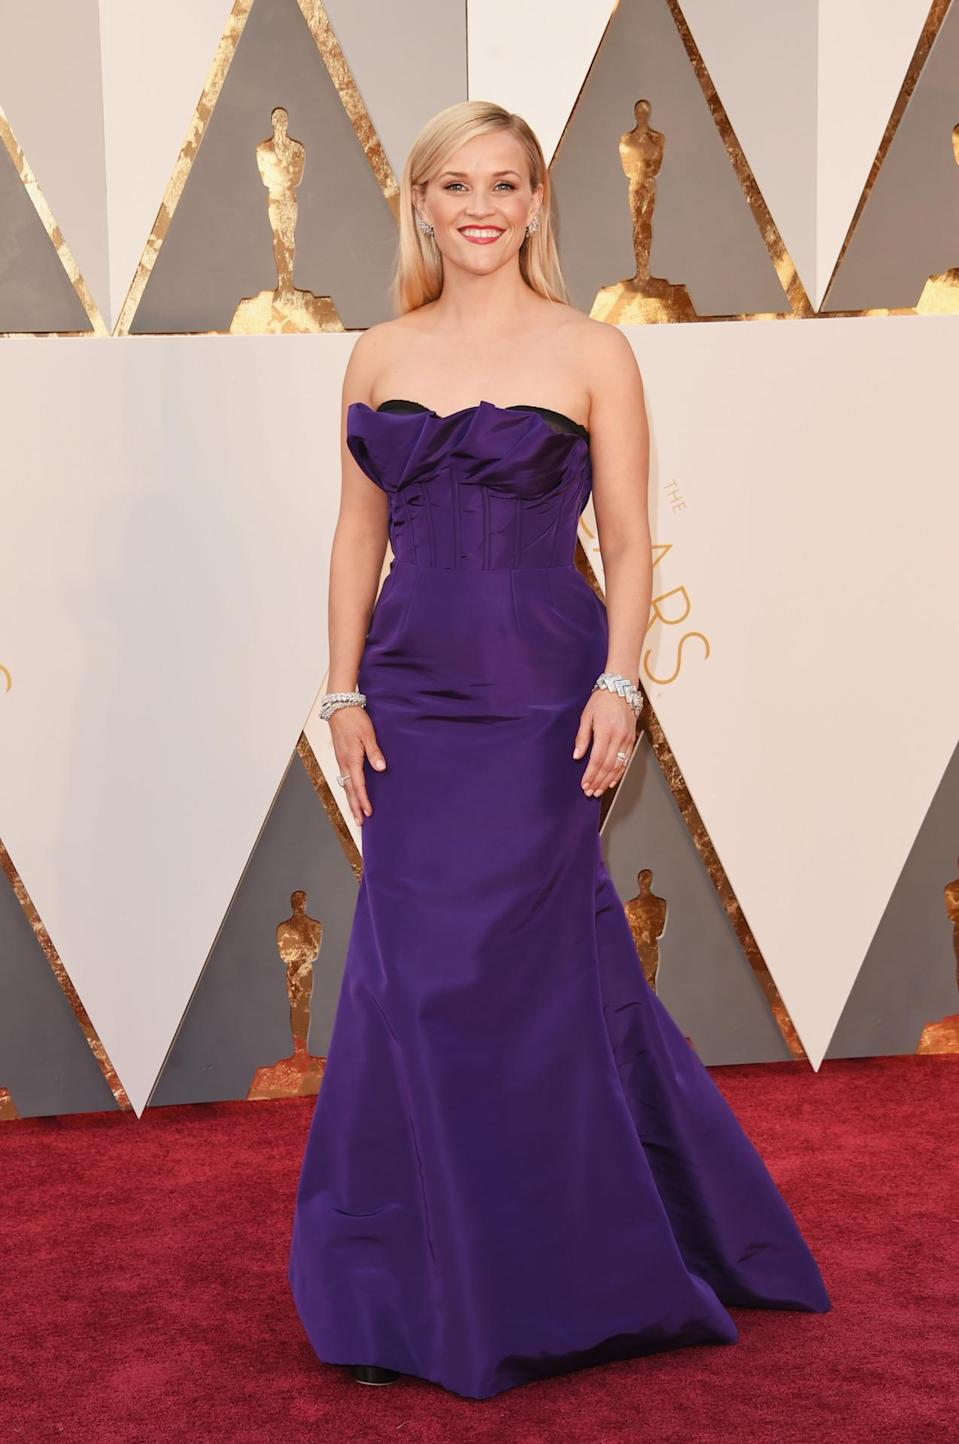 <p>Reese Witherspoon twinned with Tina Fey in a purple strapless gown from Oscar de la Renta. <i><i>(Photo: Getty Images)</i></i></p>